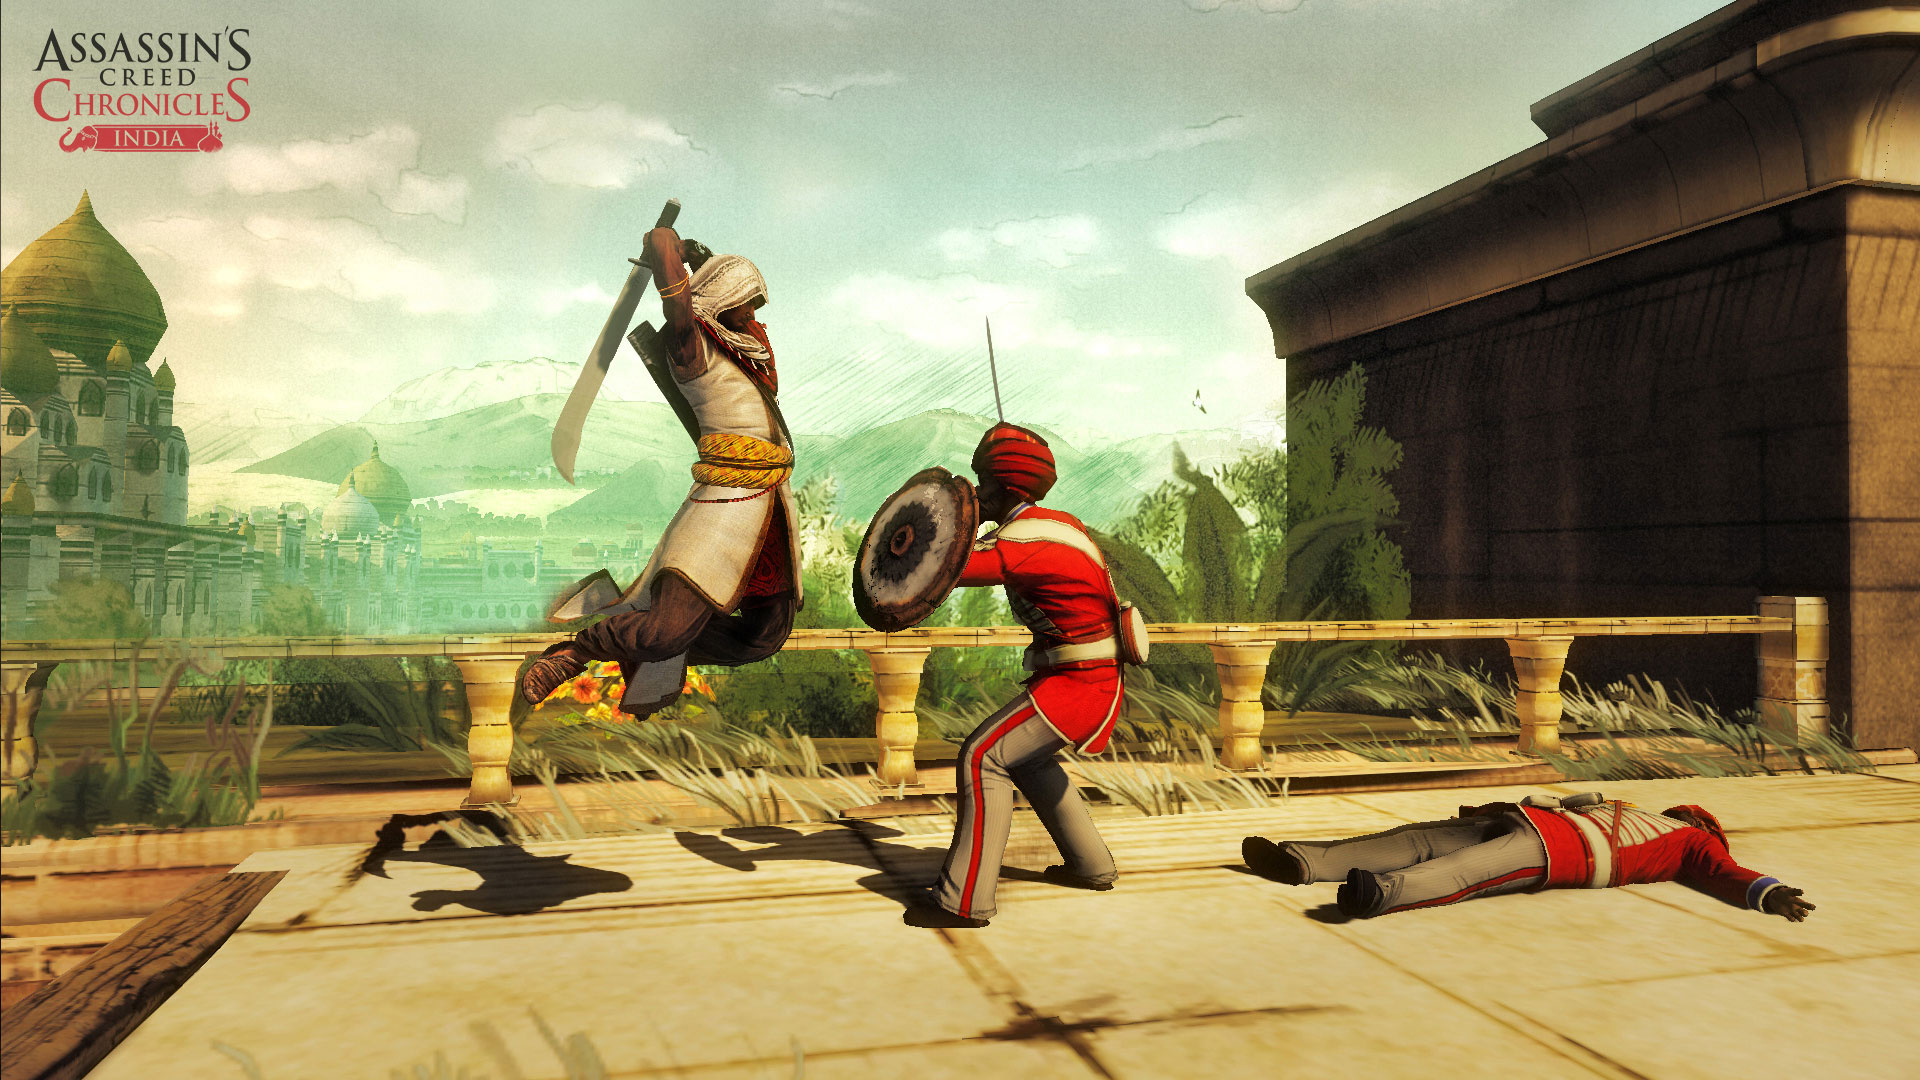 Assassin S Creed Chronicles Trilogy Pack Now Available For Ps Vita